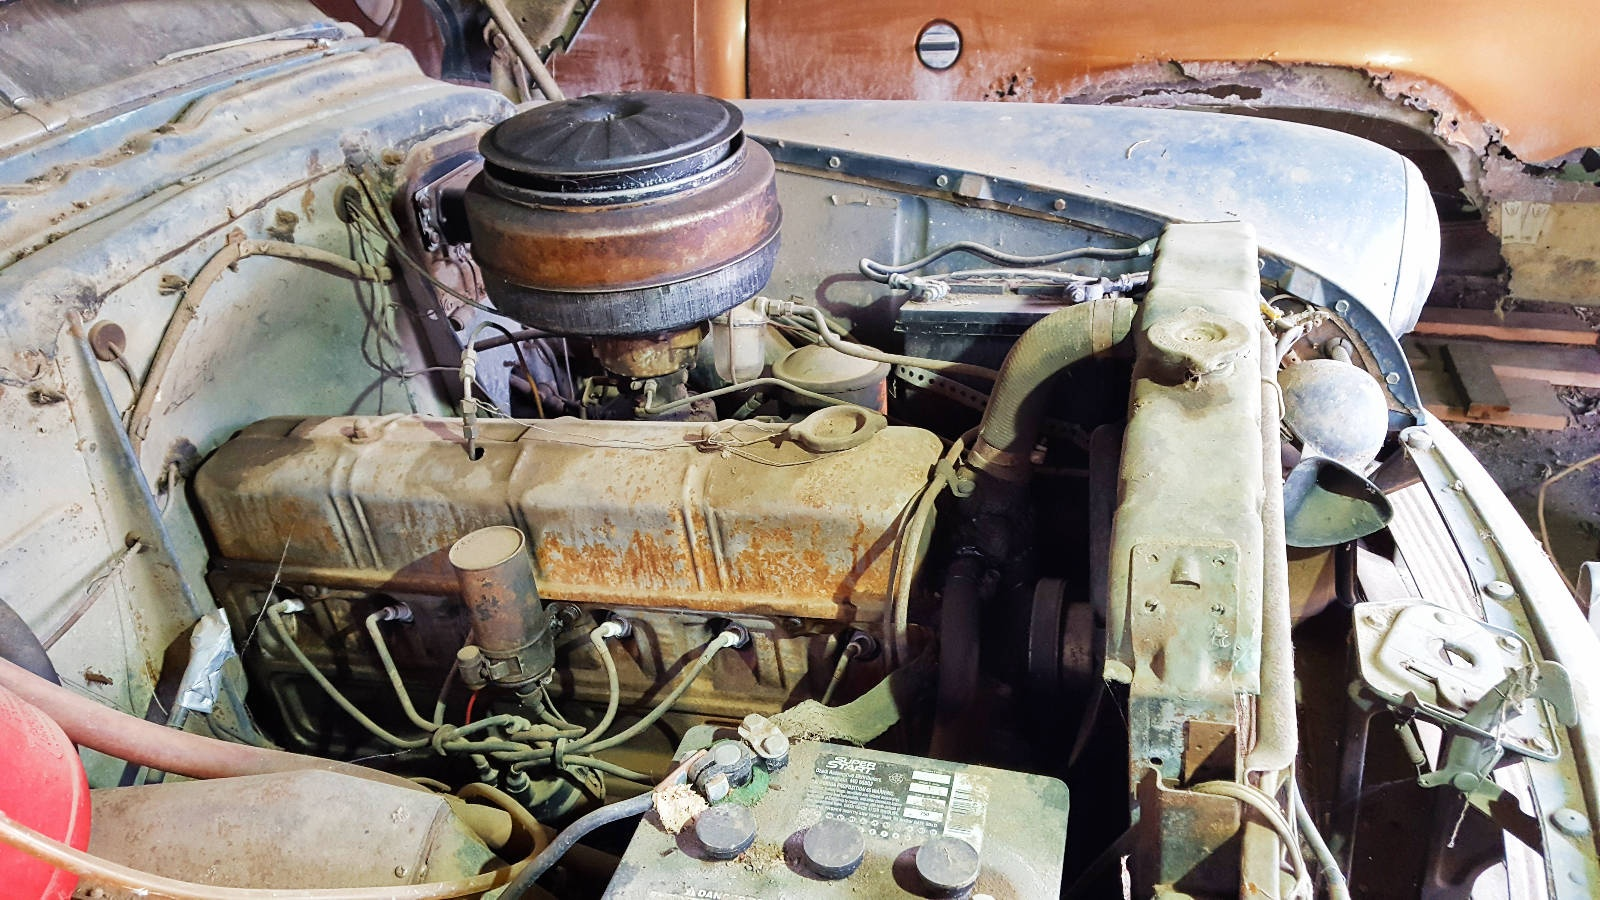 Coupe 1951 chevy coupe parts : EXCLUSIVE: 1951 Chevrolet 4-Door Deluxe